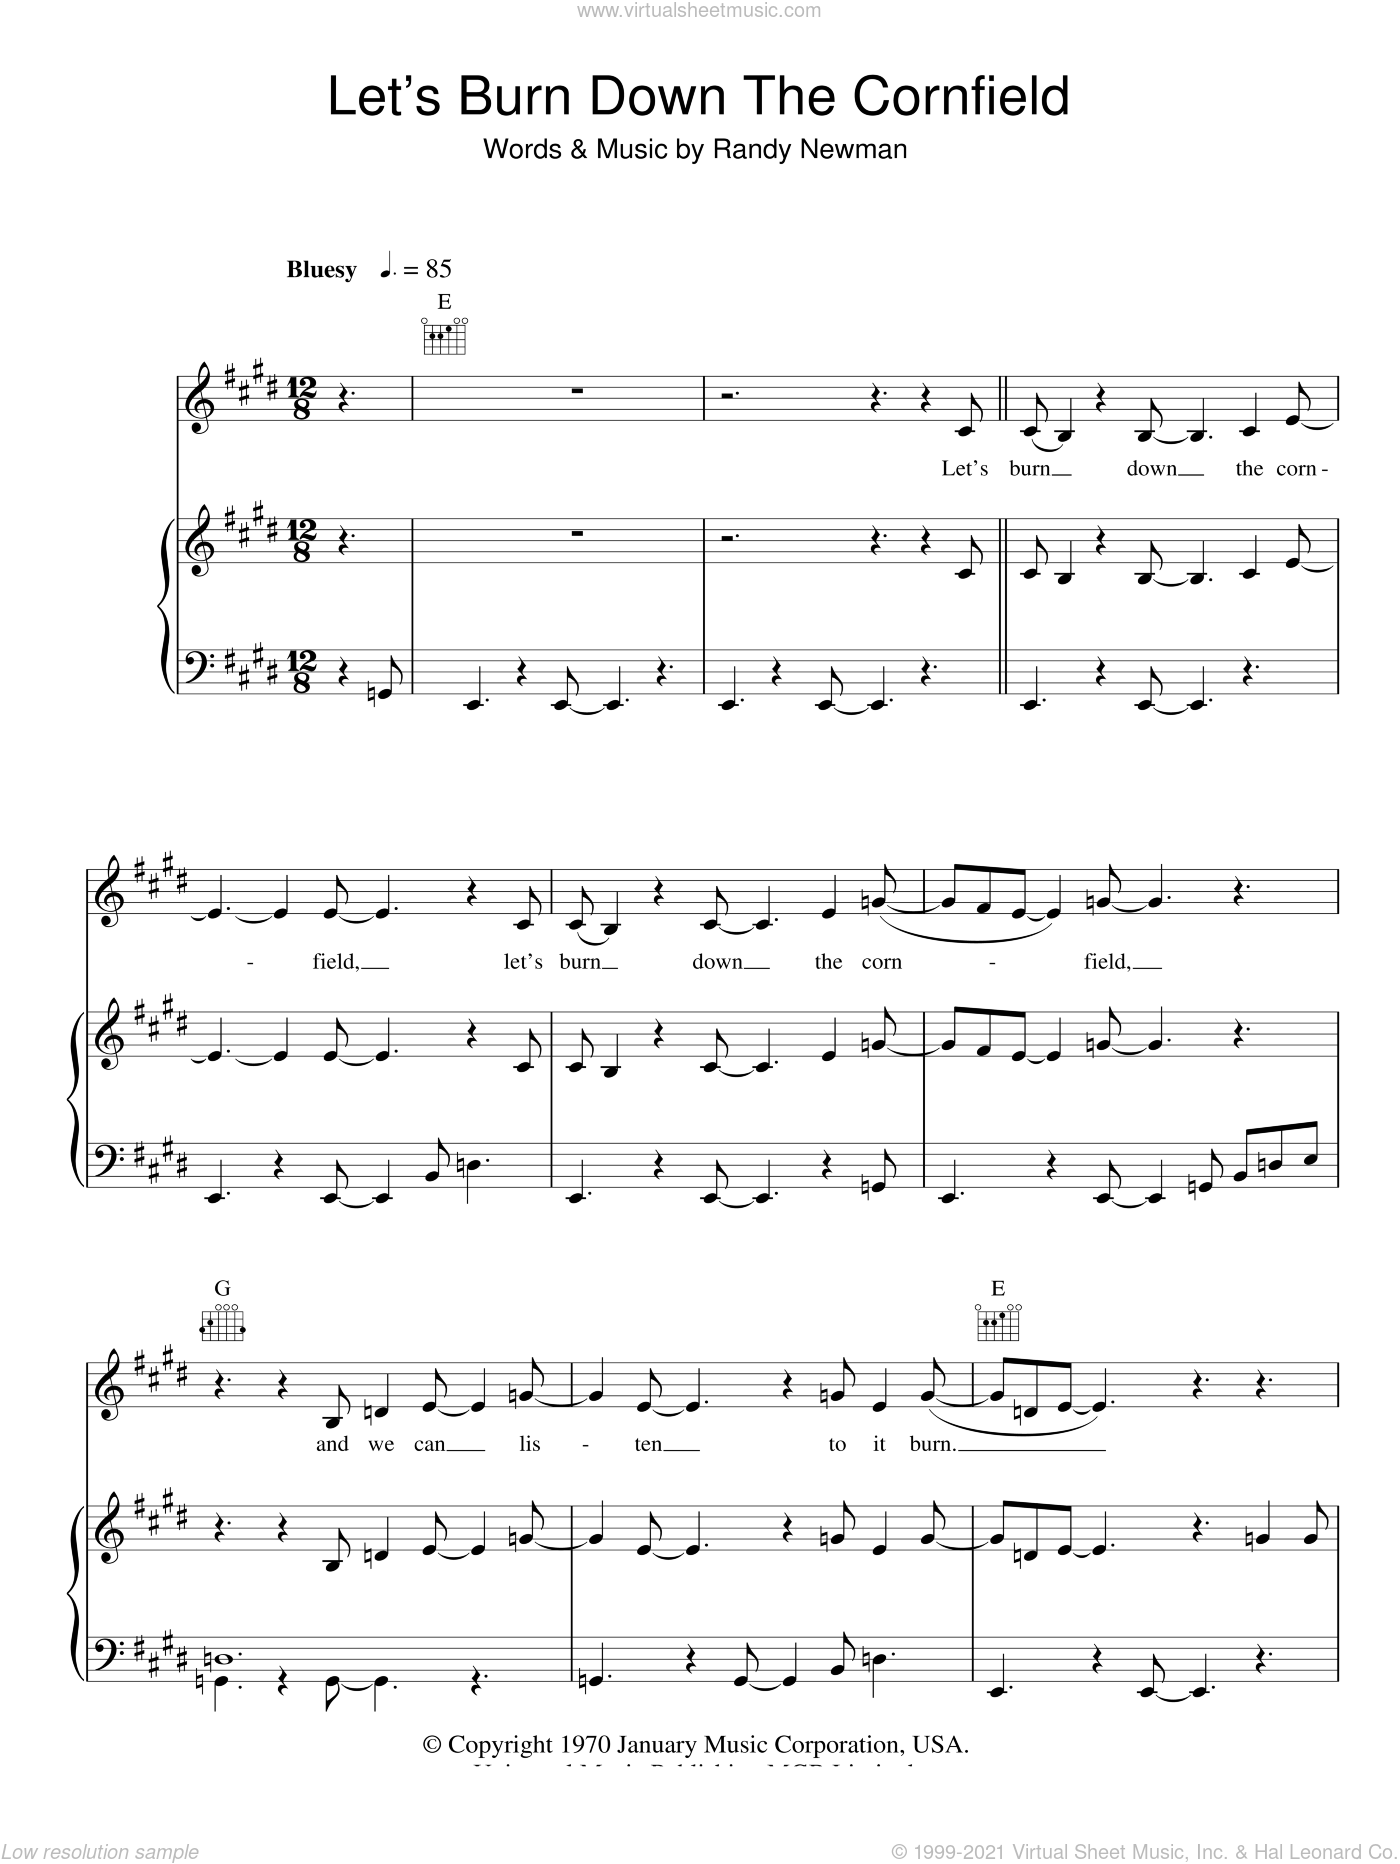 Let's Burn Down The Cornfield sheet music for voice, piano or guitar by Randy Newman. Score Image Preview.